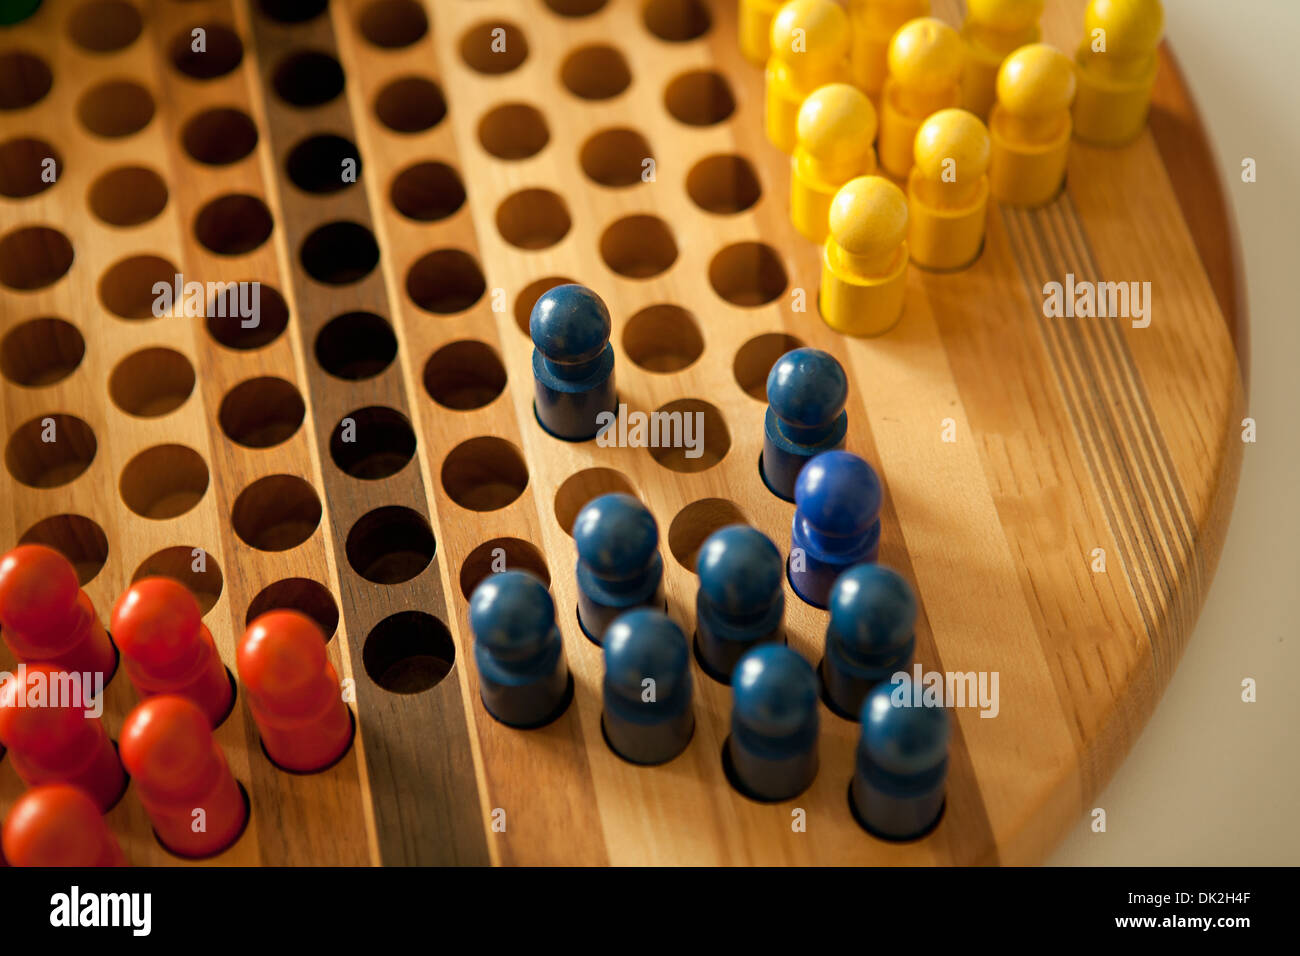 Close up high angle view of colored pegs in Chinese checkers board - Stock Image